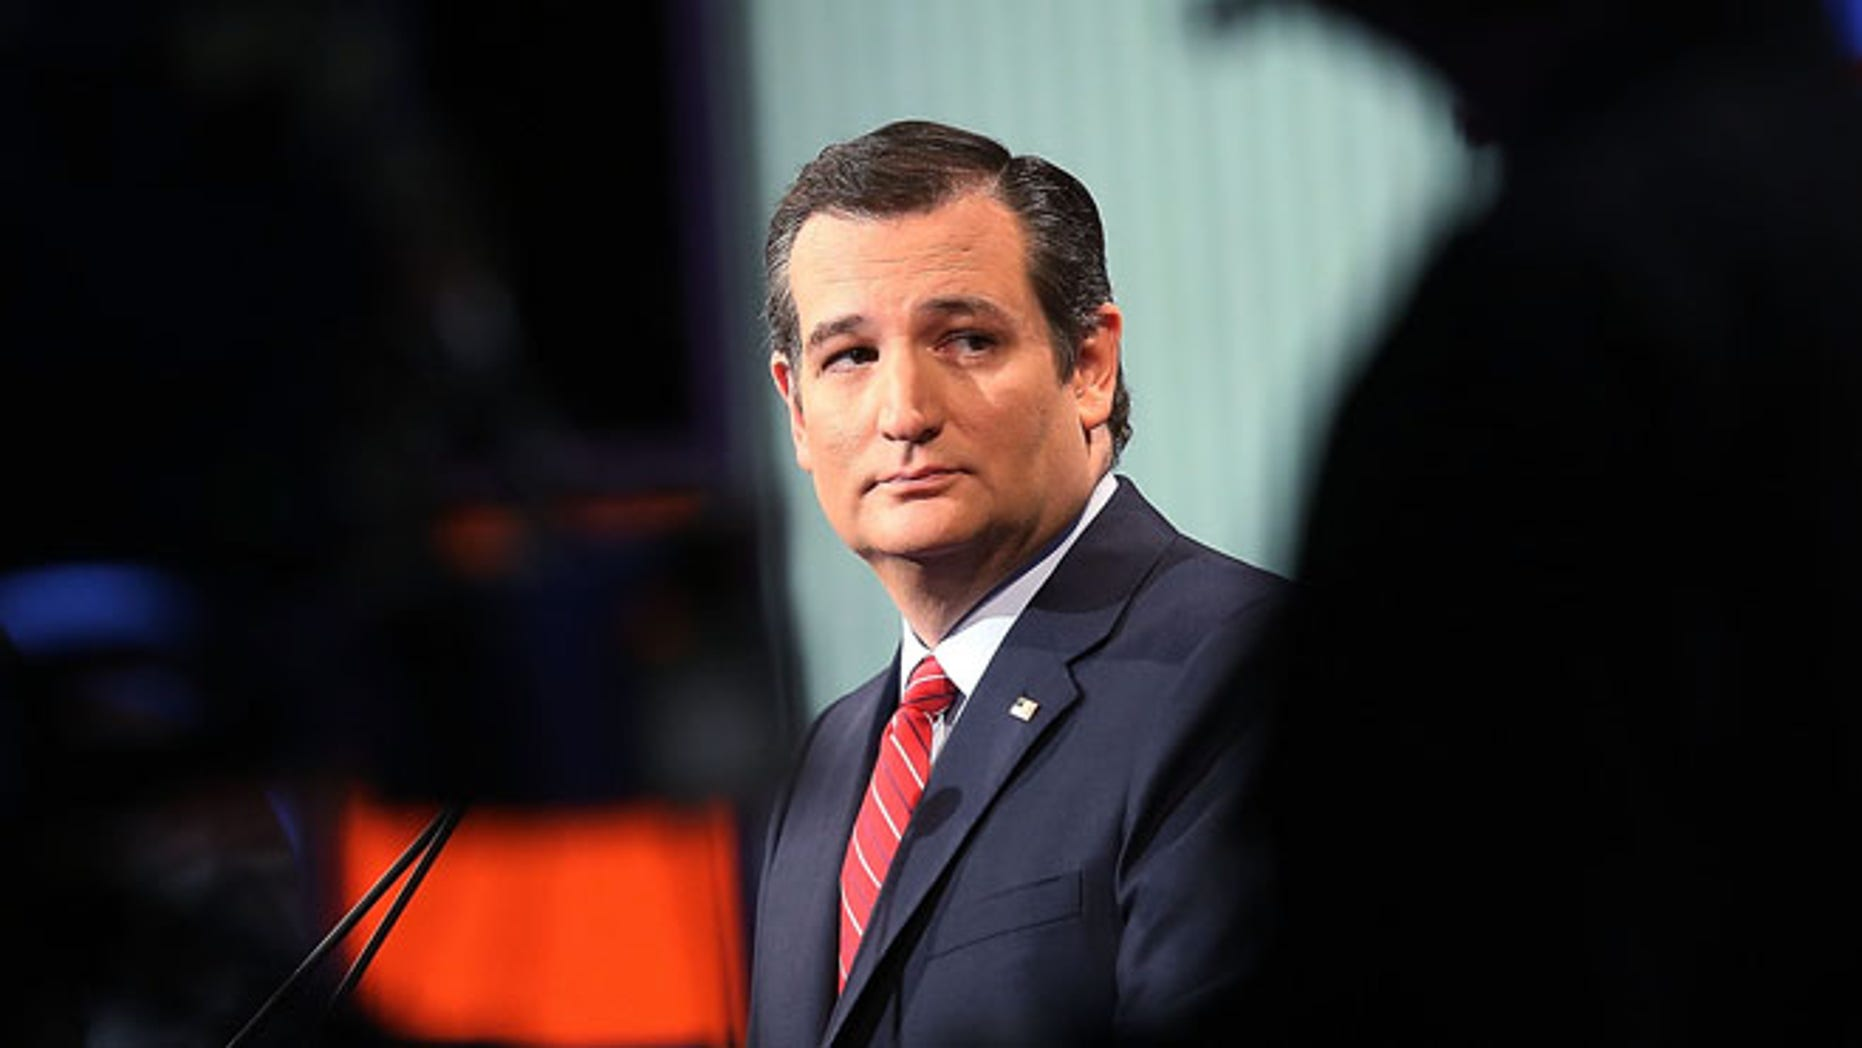 Republican presidential candidate Sen. Ted Cruz (R-TX) participates in the Fox News - Google GOP Debate January 28, 2016 at the Iowa Events Center in Des Moines, Iowa. (Photo by Scott Olson/Getty Images)